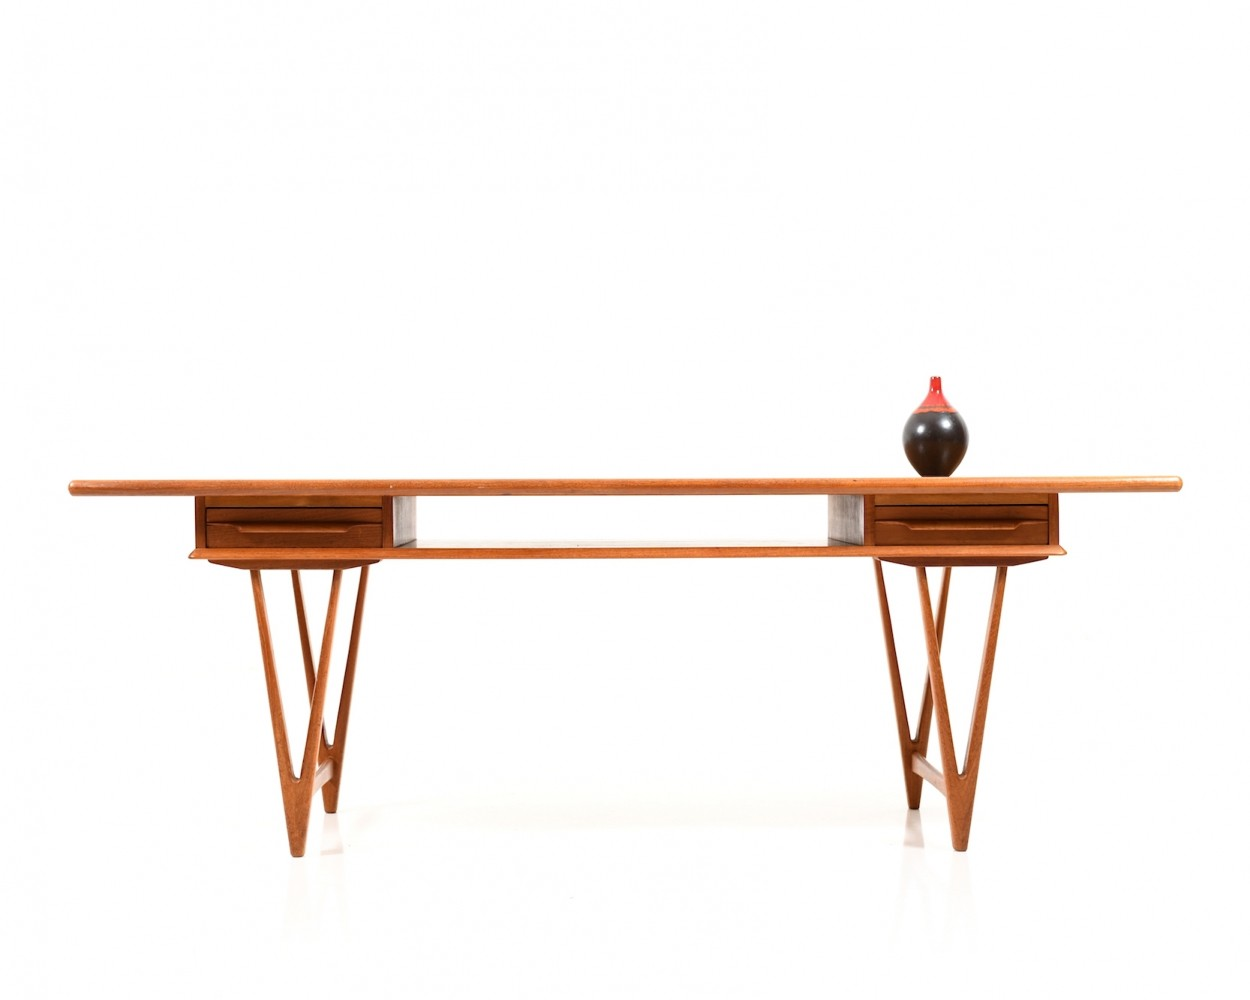 Mid century danish teak Sofa Table by E. W. Bach for Toften Møbelfabrik